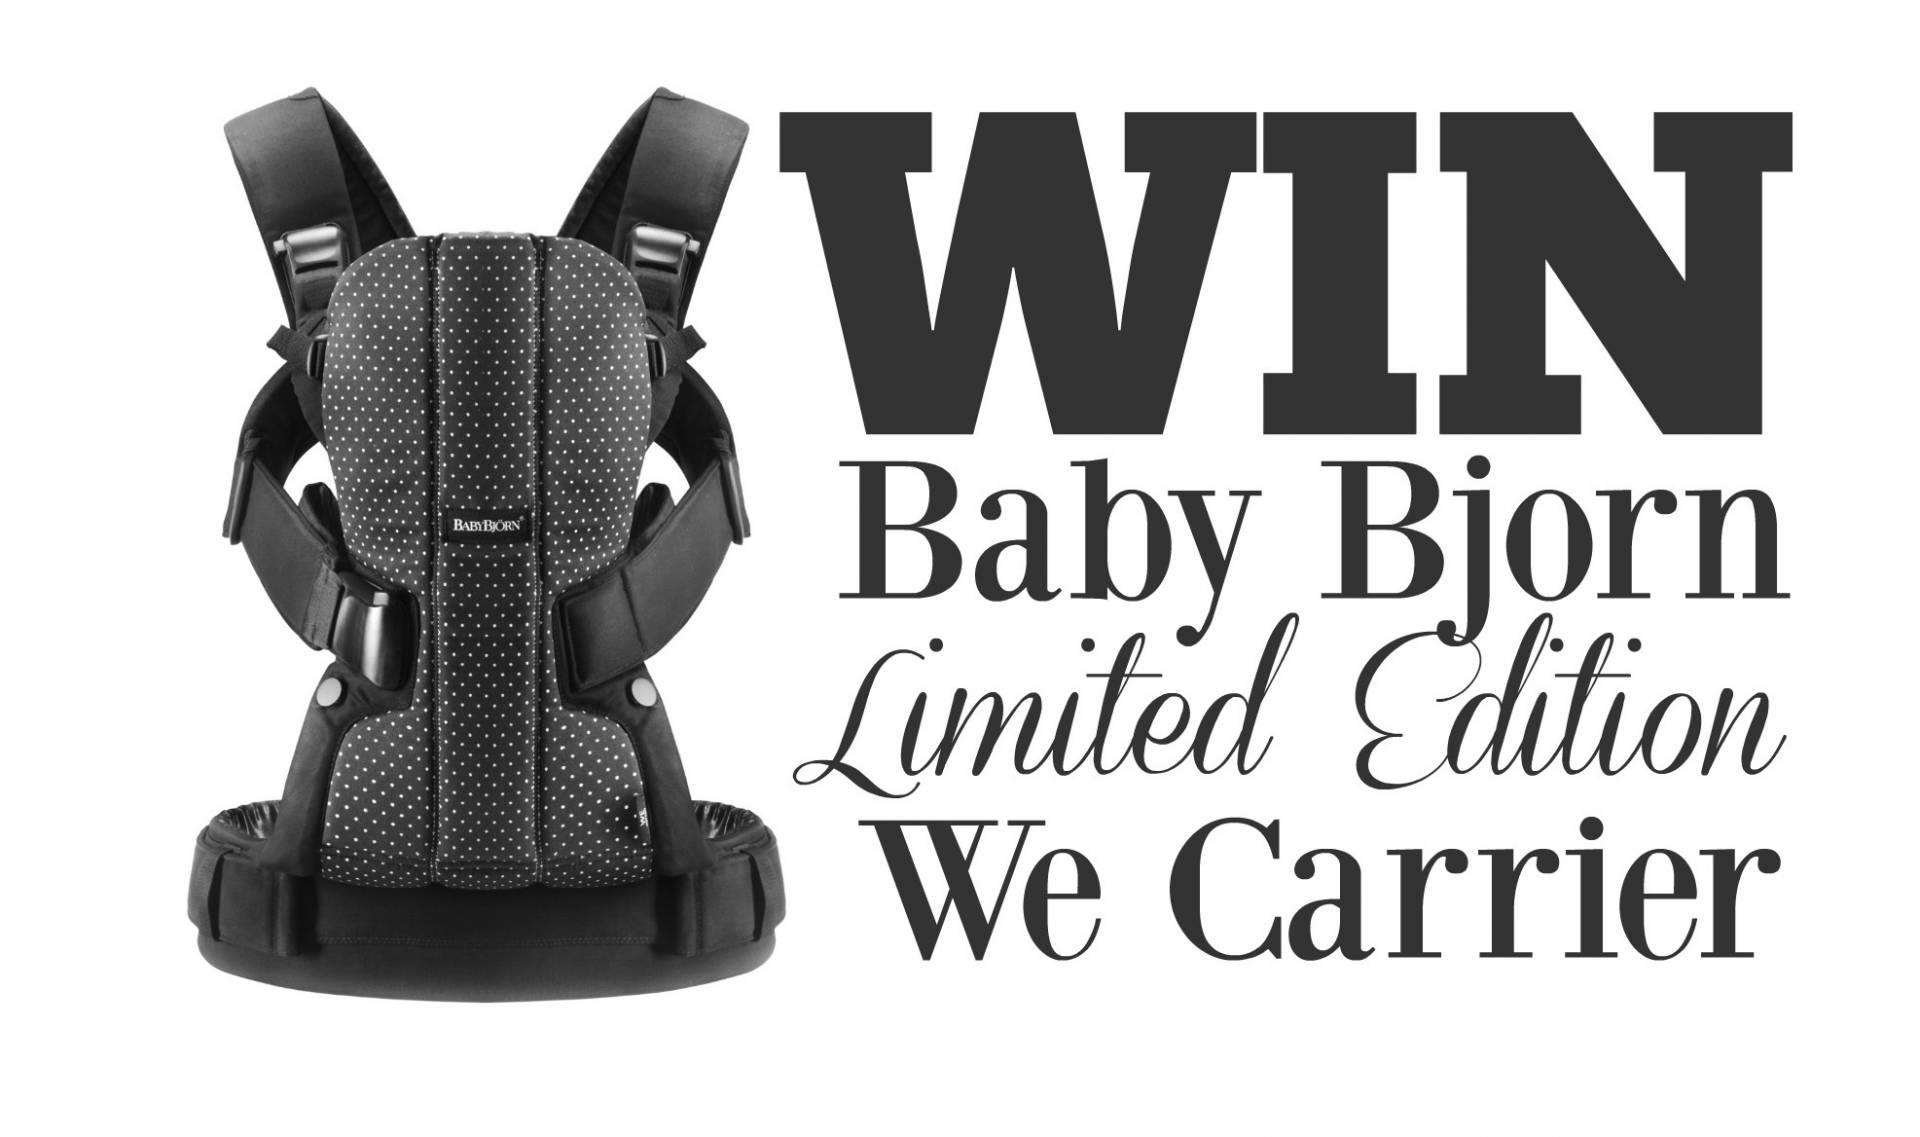 Win a Limited Edition Baby Bjorn We Dots Carrier, Baby Bjorn We Carrier comp 1%, product-review%